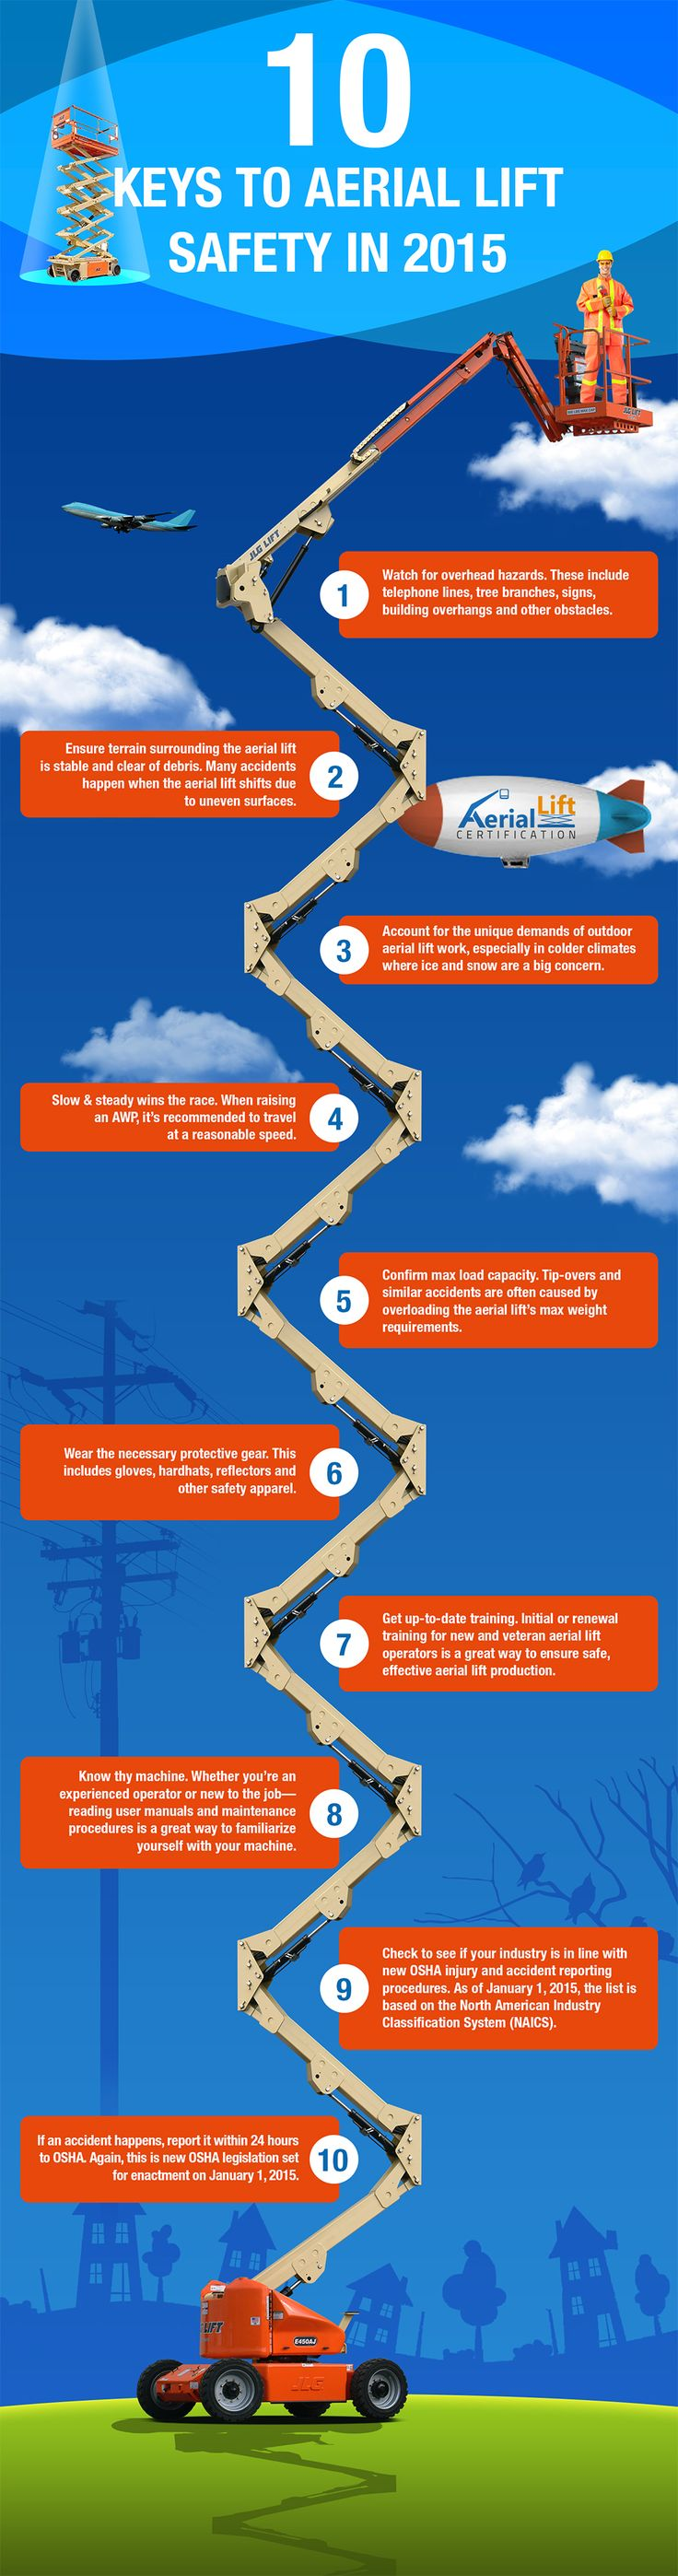 10 keys to aerial lift safety